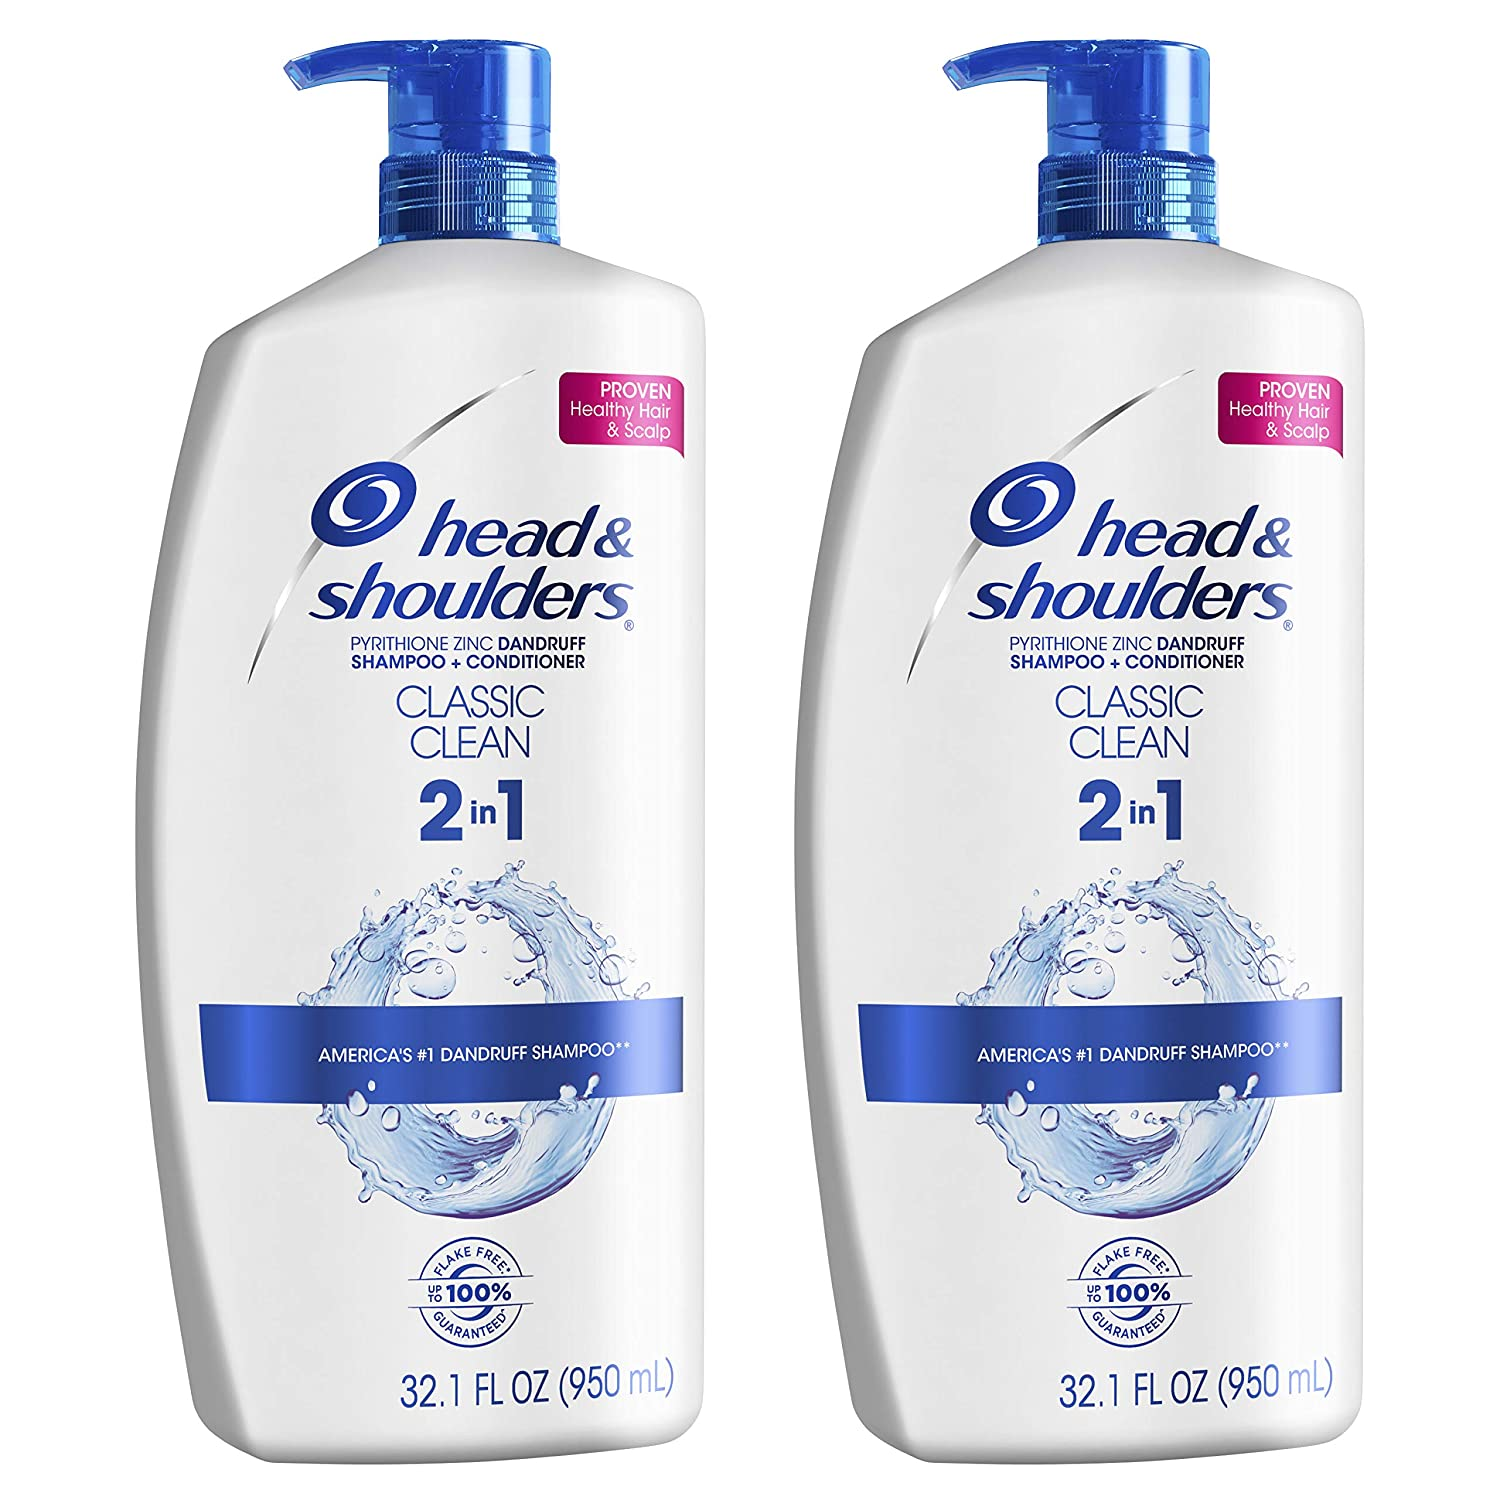 Head and Shoulders Shampoo and Conditioner 2-in-1 Anti Dandruff Treatment, two 32-ounce bottles; best dandruff shampoo